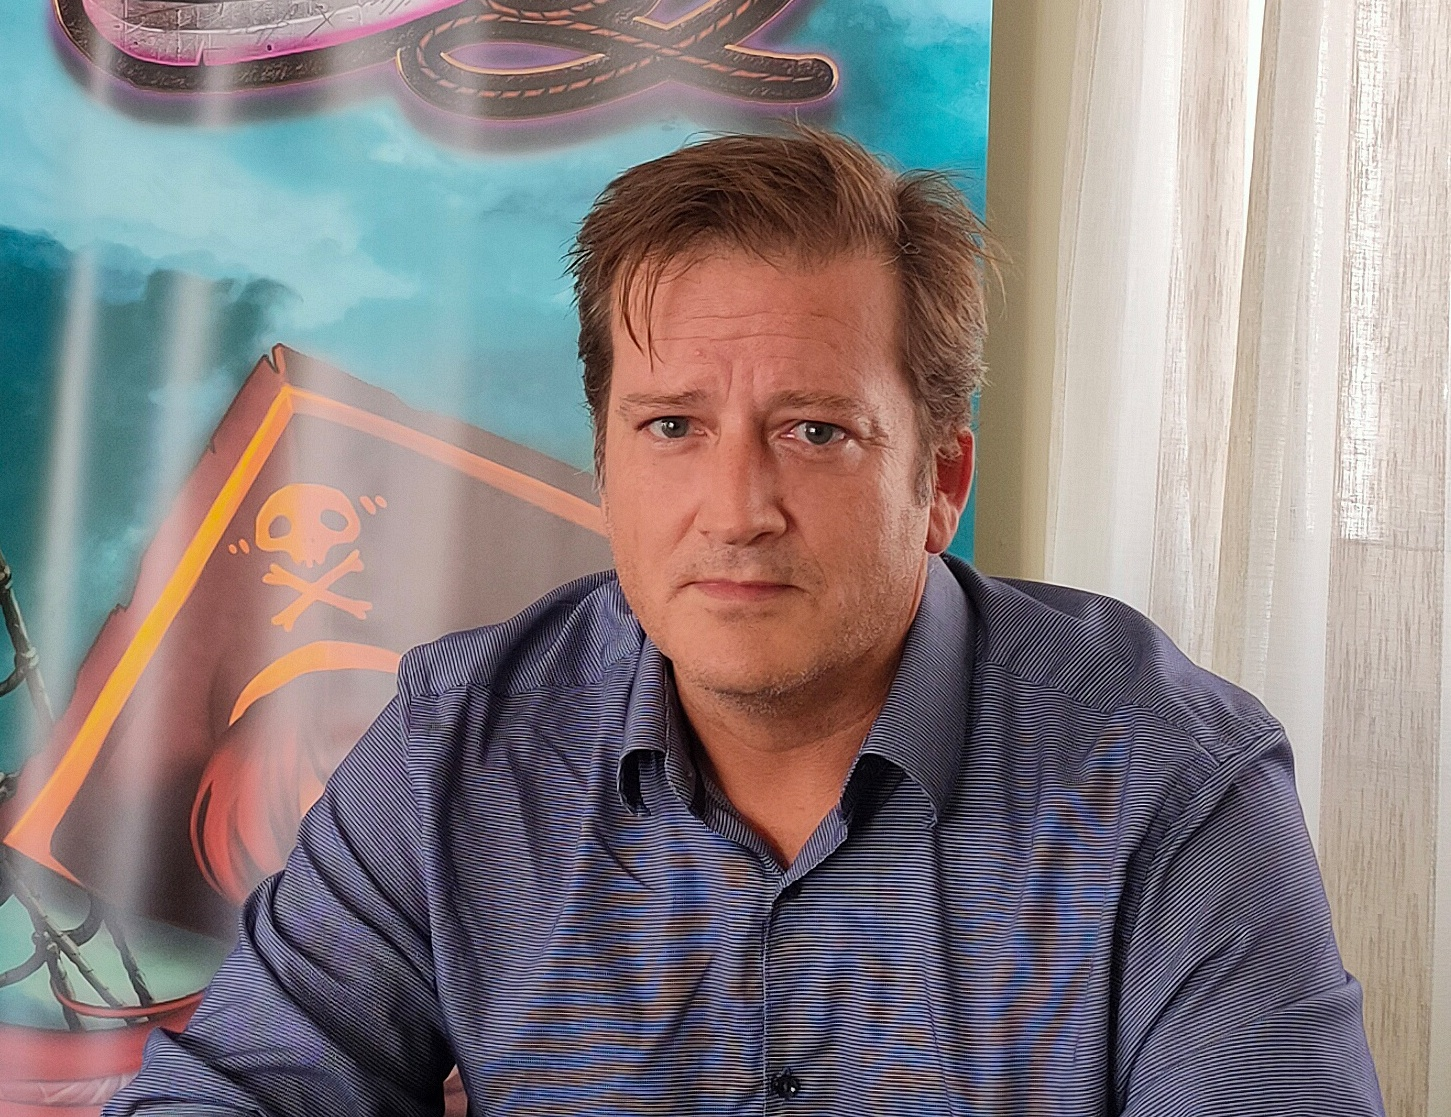 Steve Cutler, CEO and co-founder of Kalamba Games